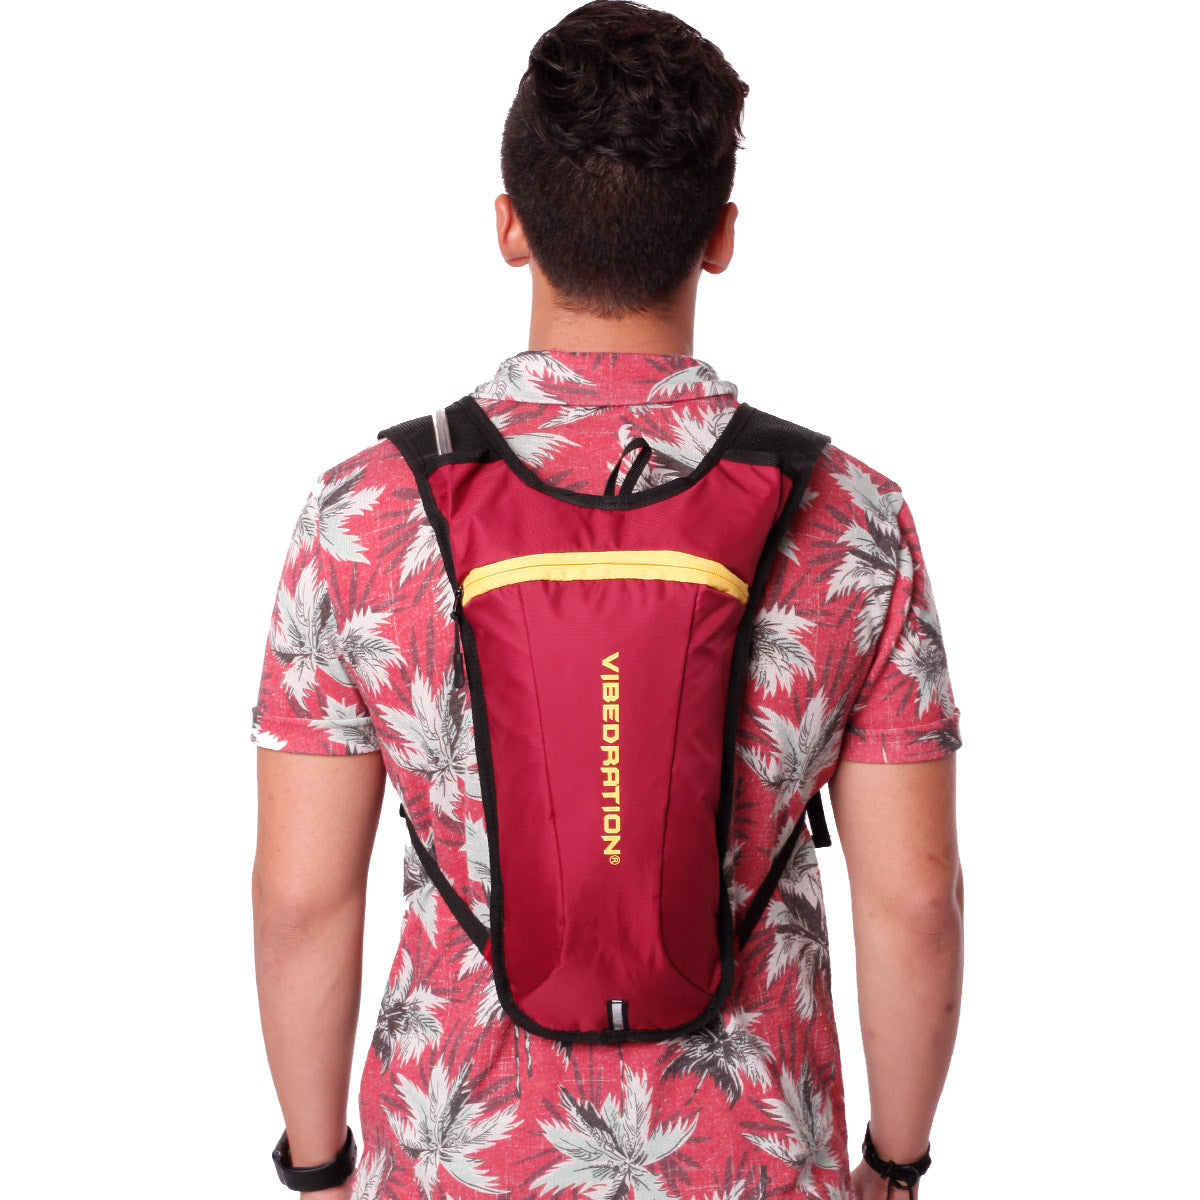 Back view of male wearing maroon and gold hydration pack.